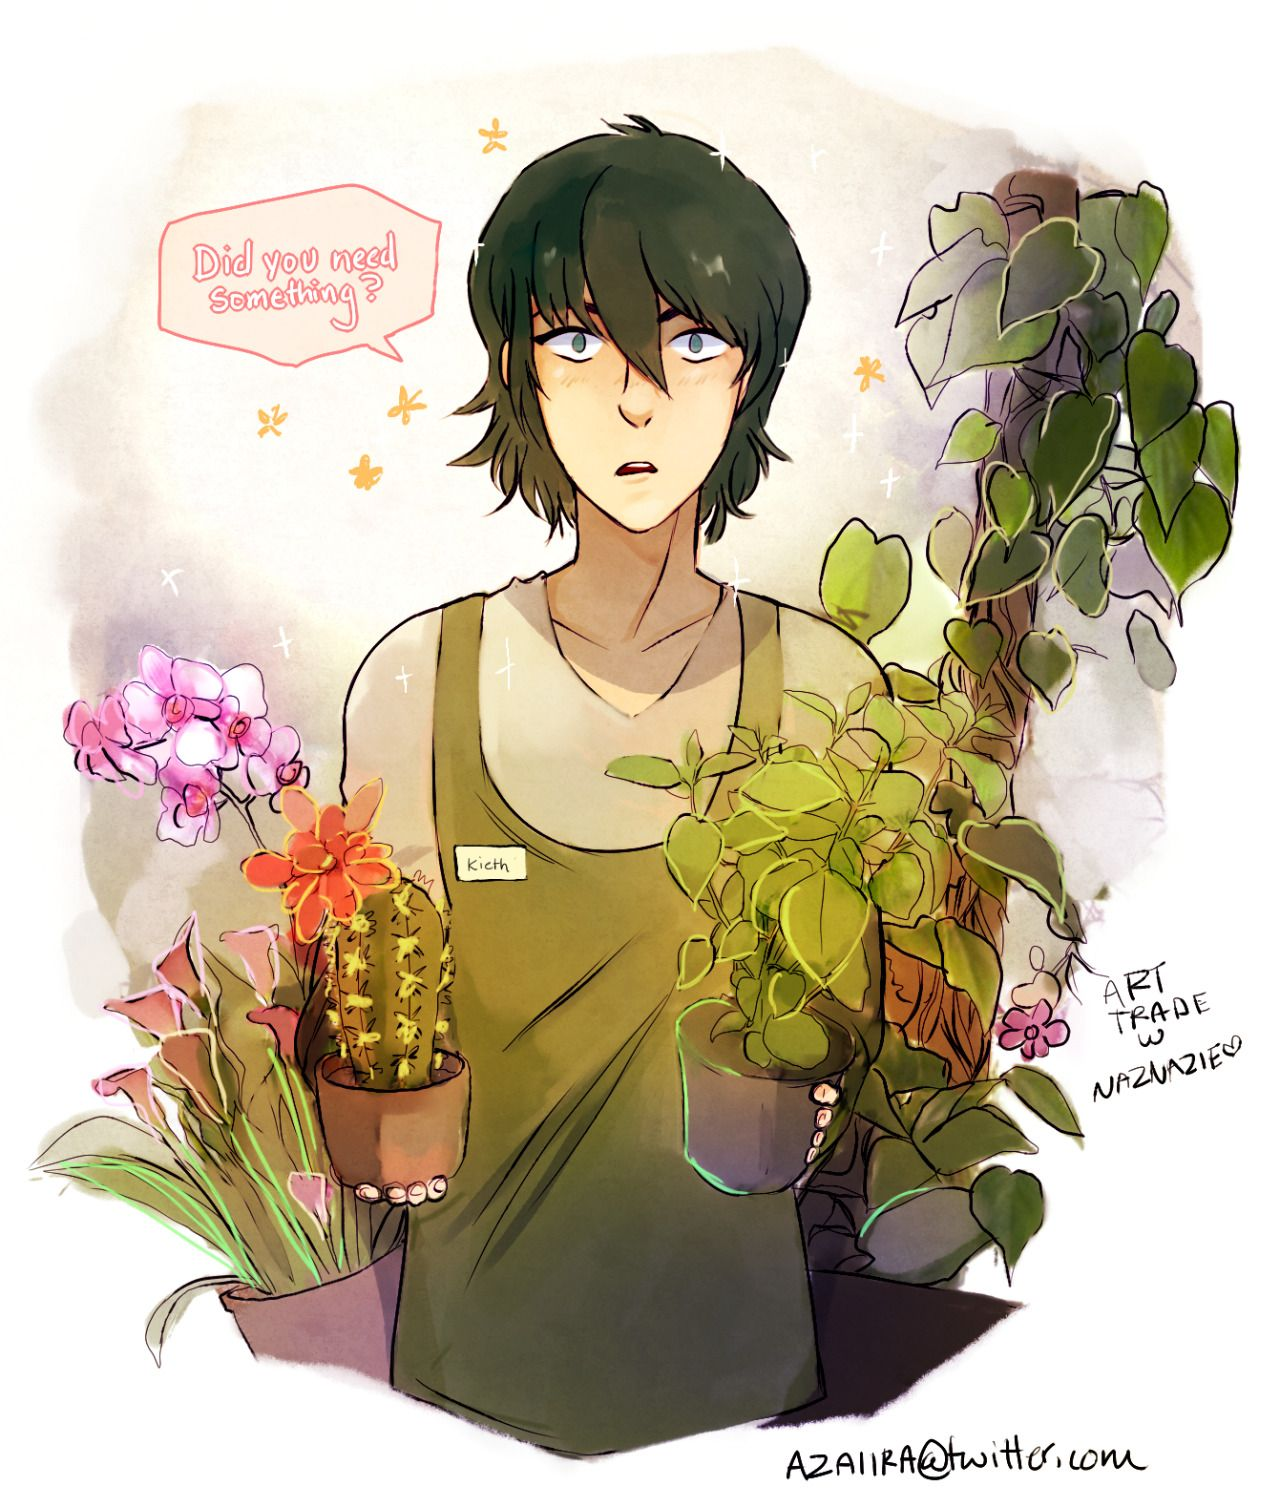 I like how keith could fit into flower shop aesthetic